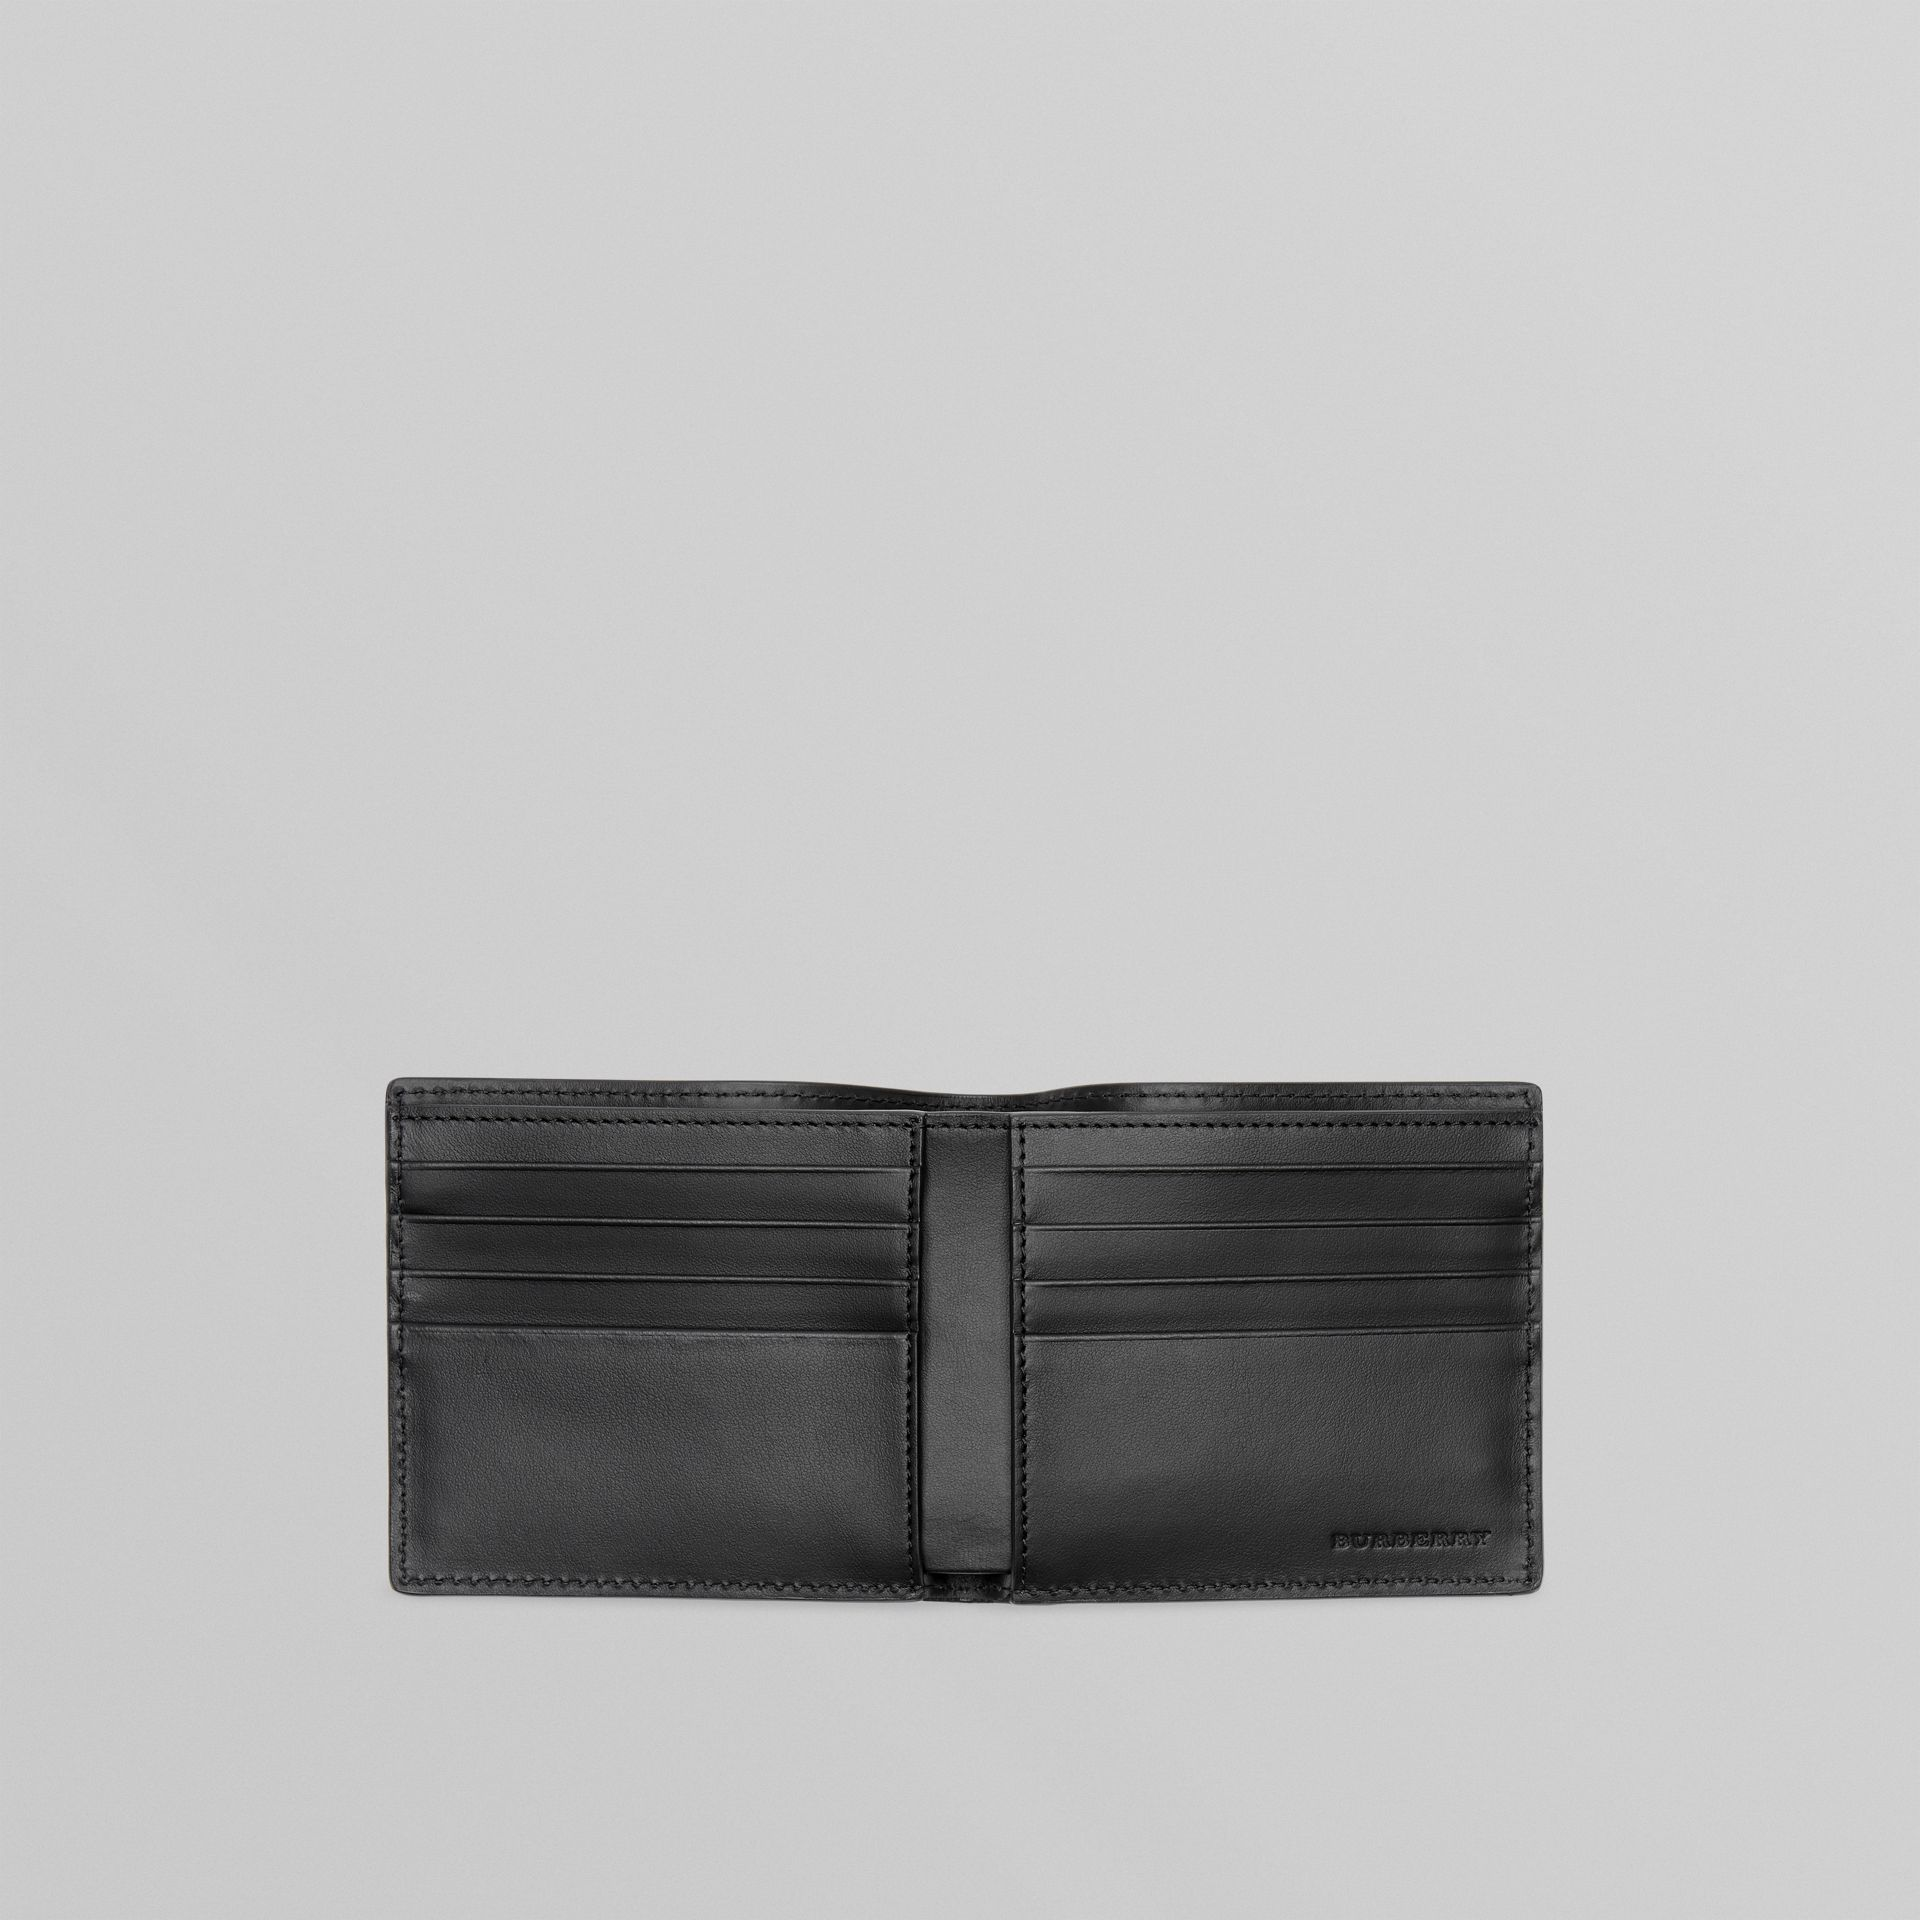 Perforated Logo Leather International Bifold Wallet in Black - Men | Burberry United States - gallery image 3